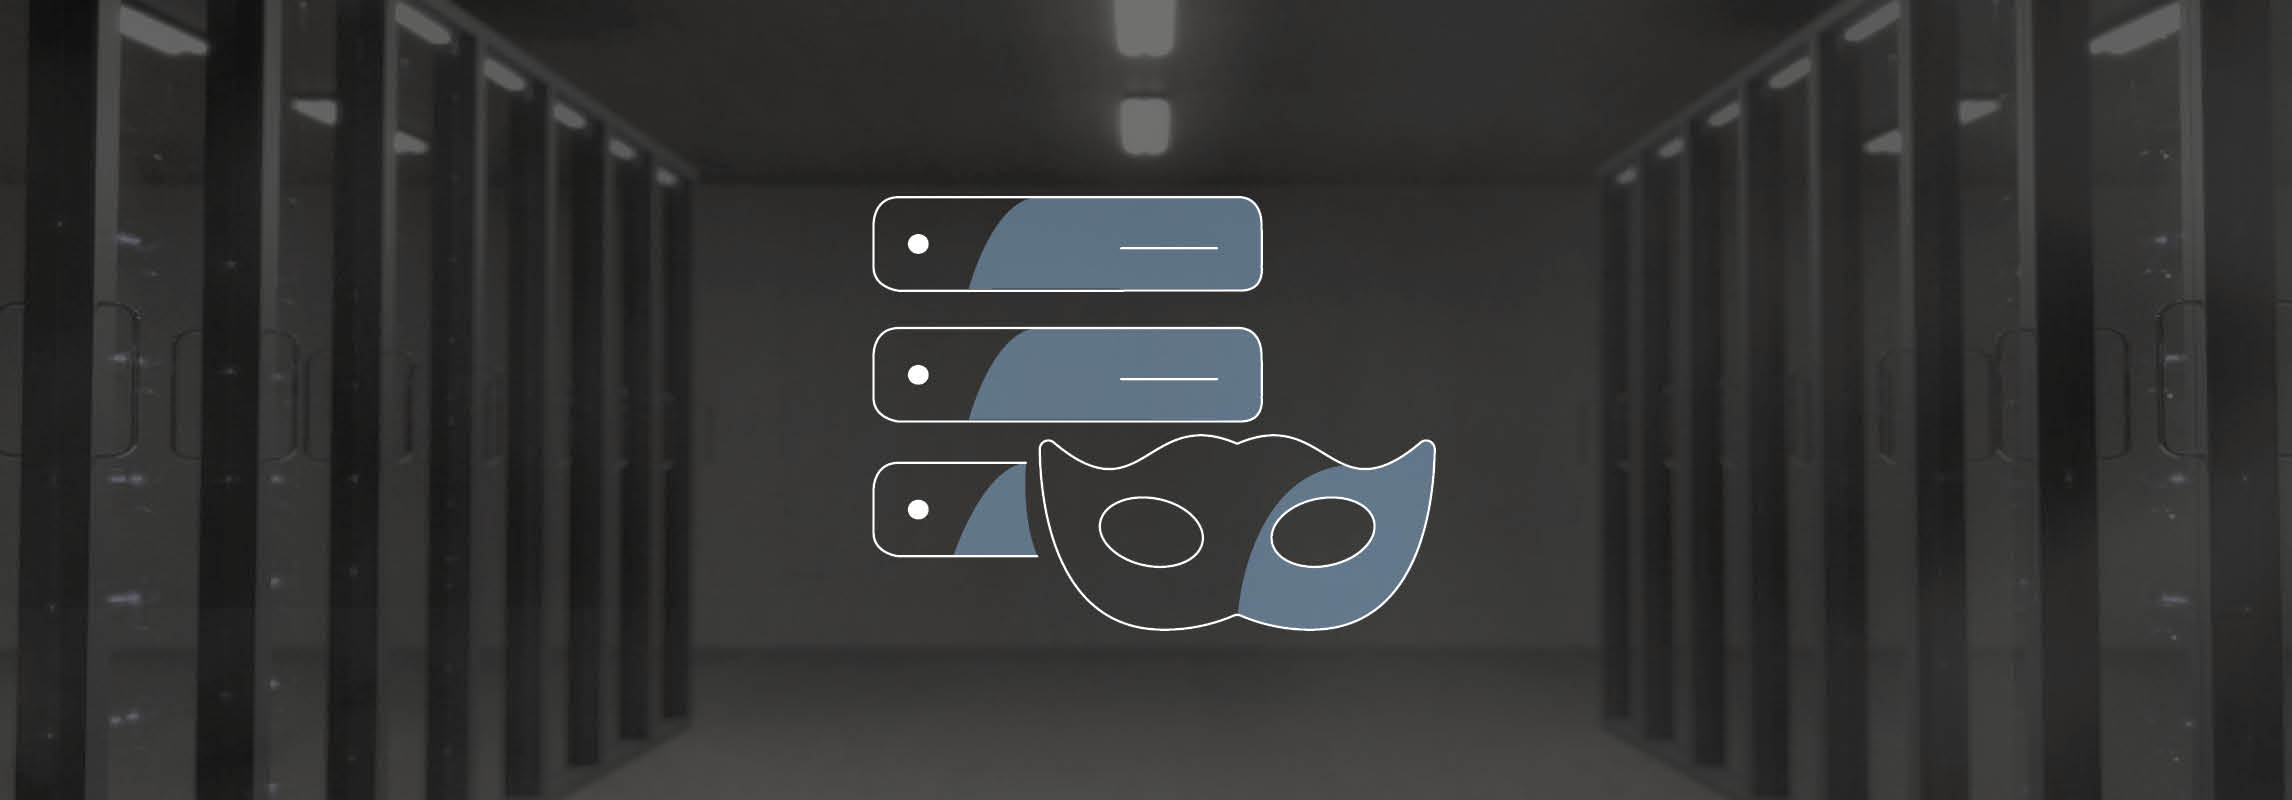 Anonymization-Icon in front of a server